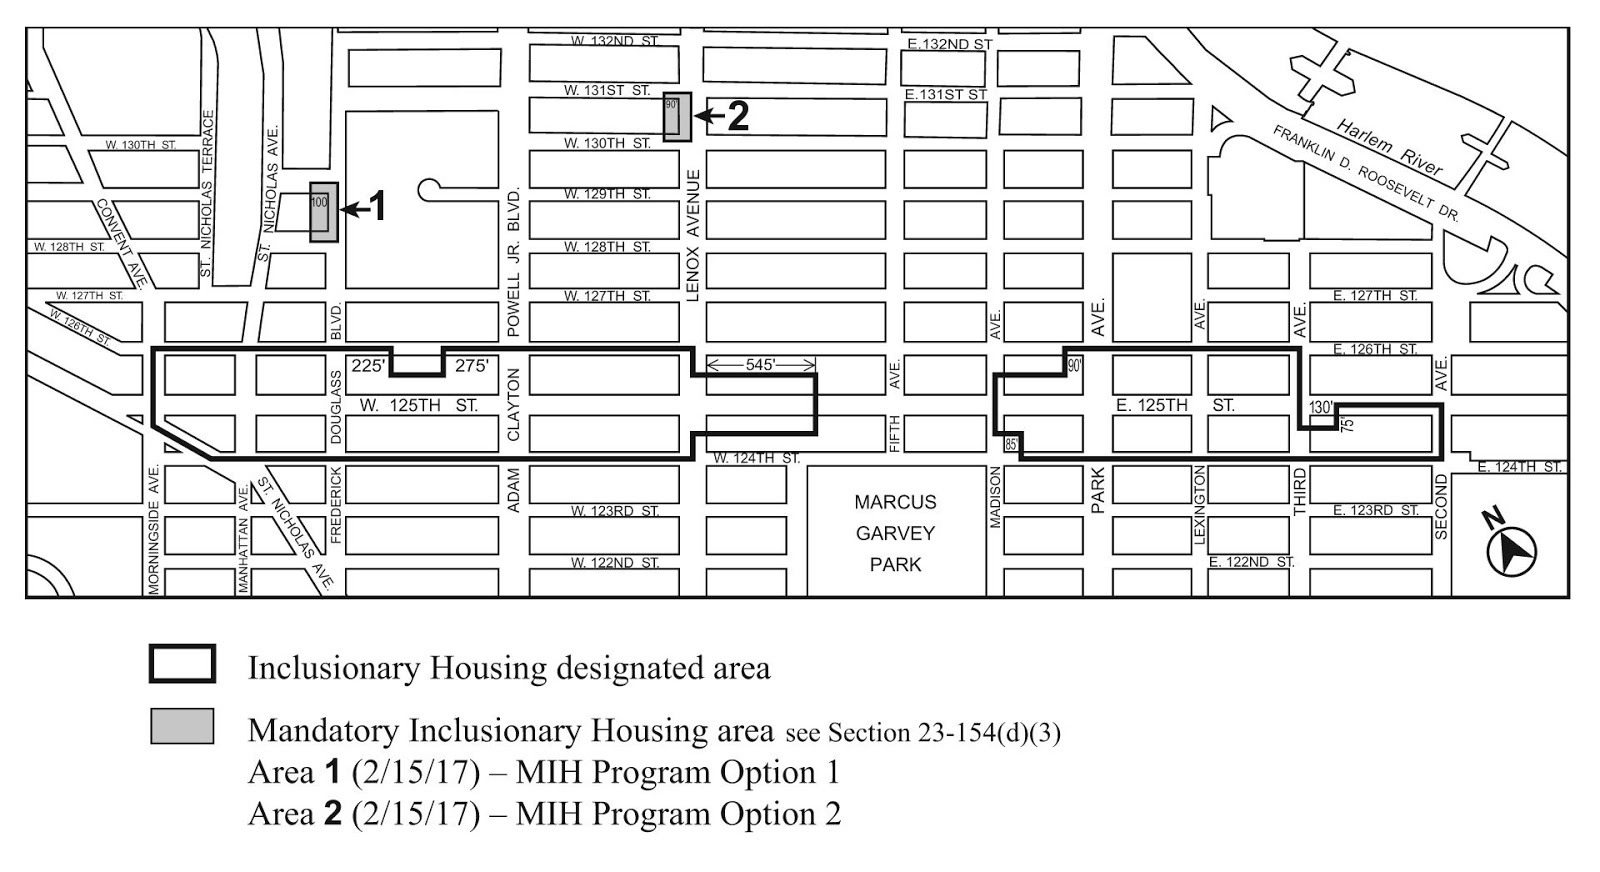 Zoning Resolutions F-Inclusionary Housing Designated Areas and Mandatory Inclusionary Housing Areas_2.97